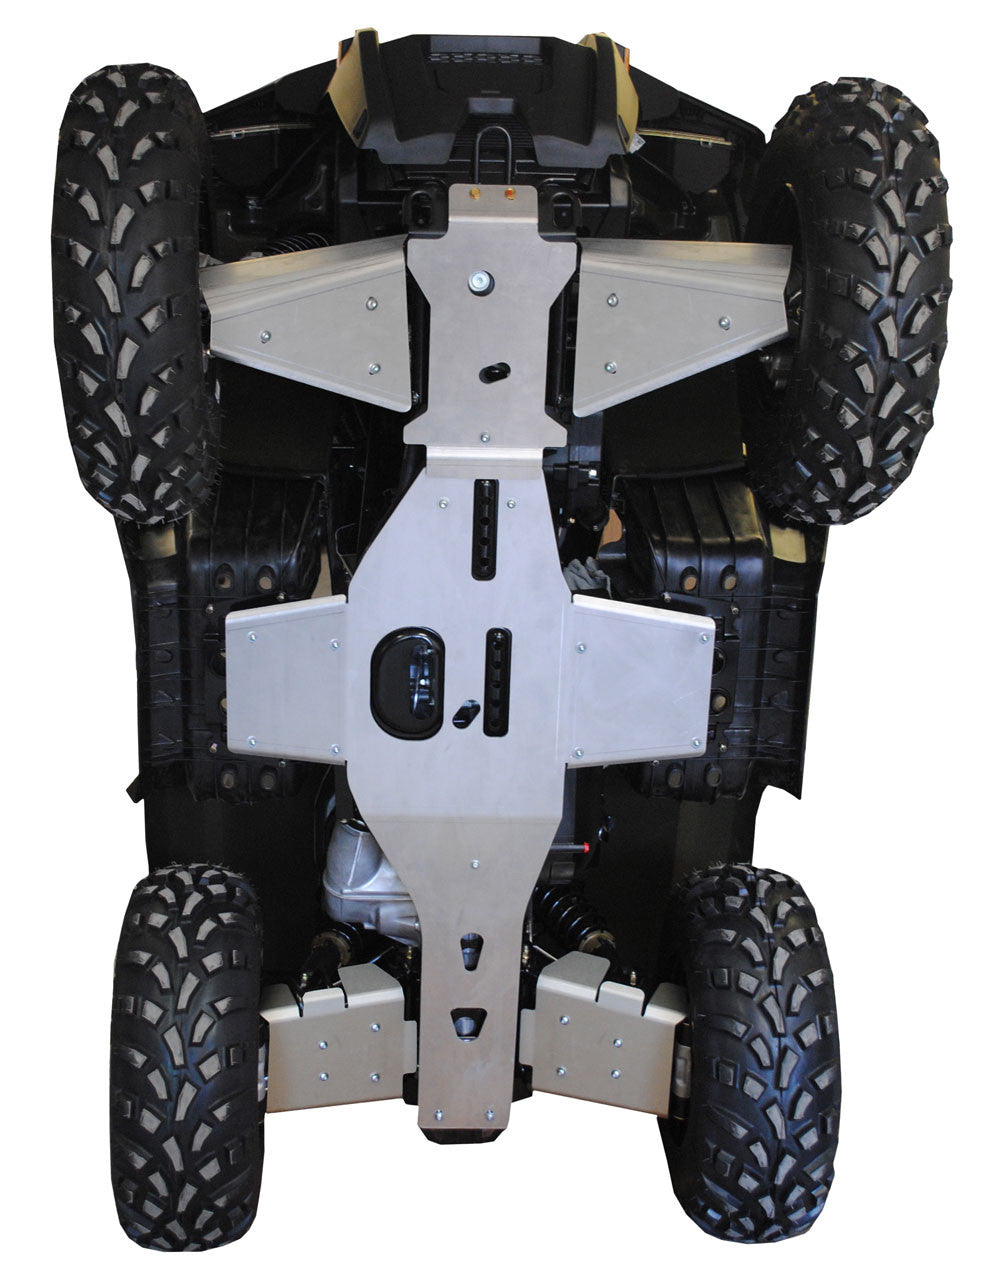 6-Piece Complete Aluminum Skid Plate Set, Polaris Sportsman 700